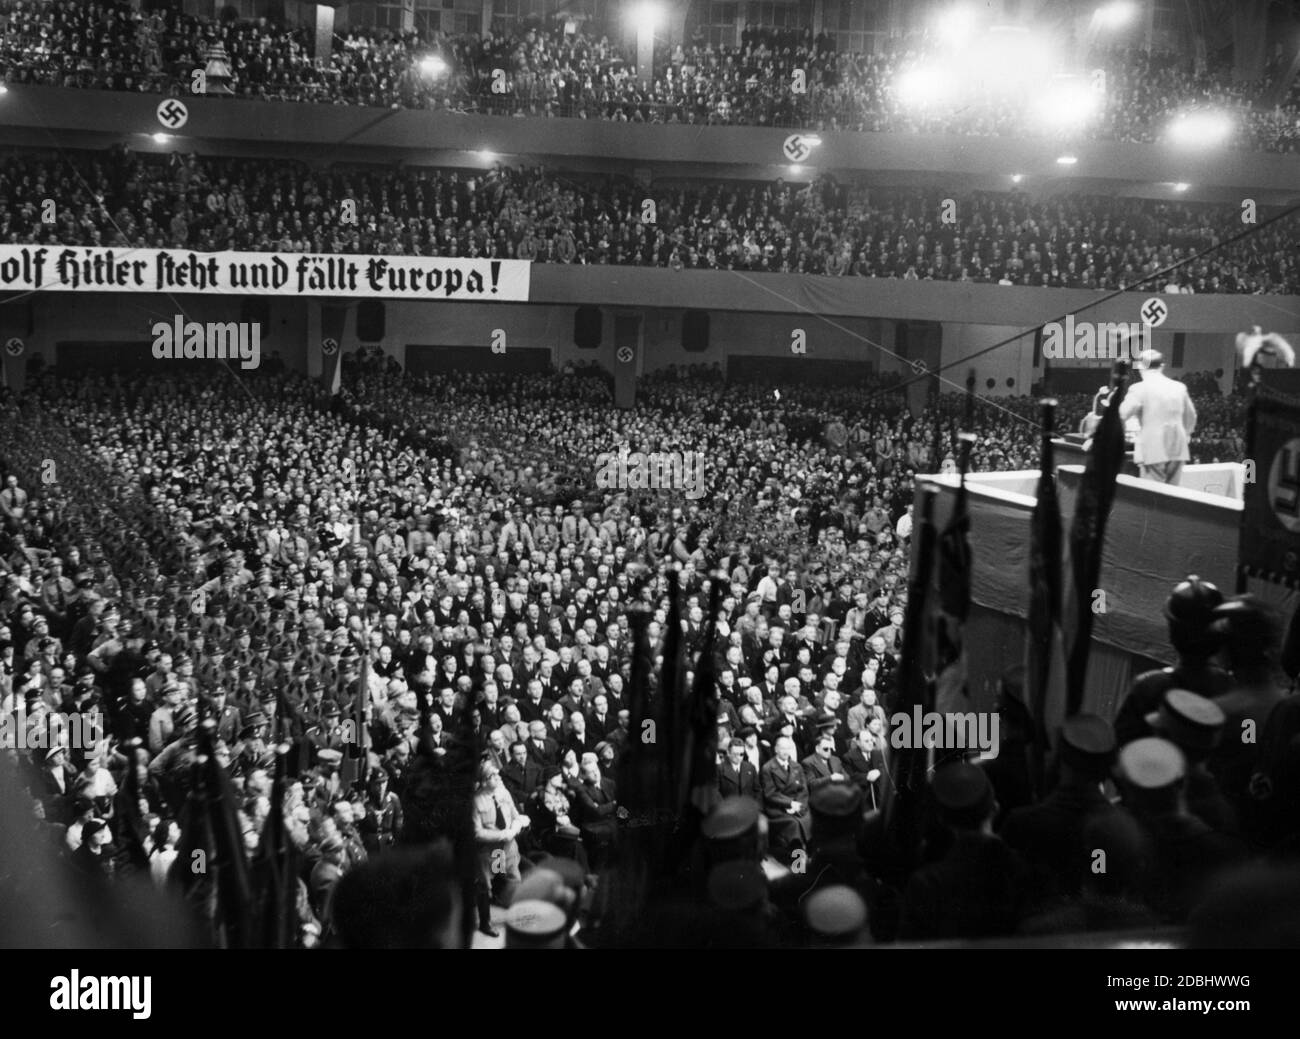 """""""Overview during a speech by Adolf Hitler in the Festhalle in Frankfurt. On the left is a banner reading """"""""Europe stands and falls with Adolf Hitler""""""""."""" Stock Photo"""